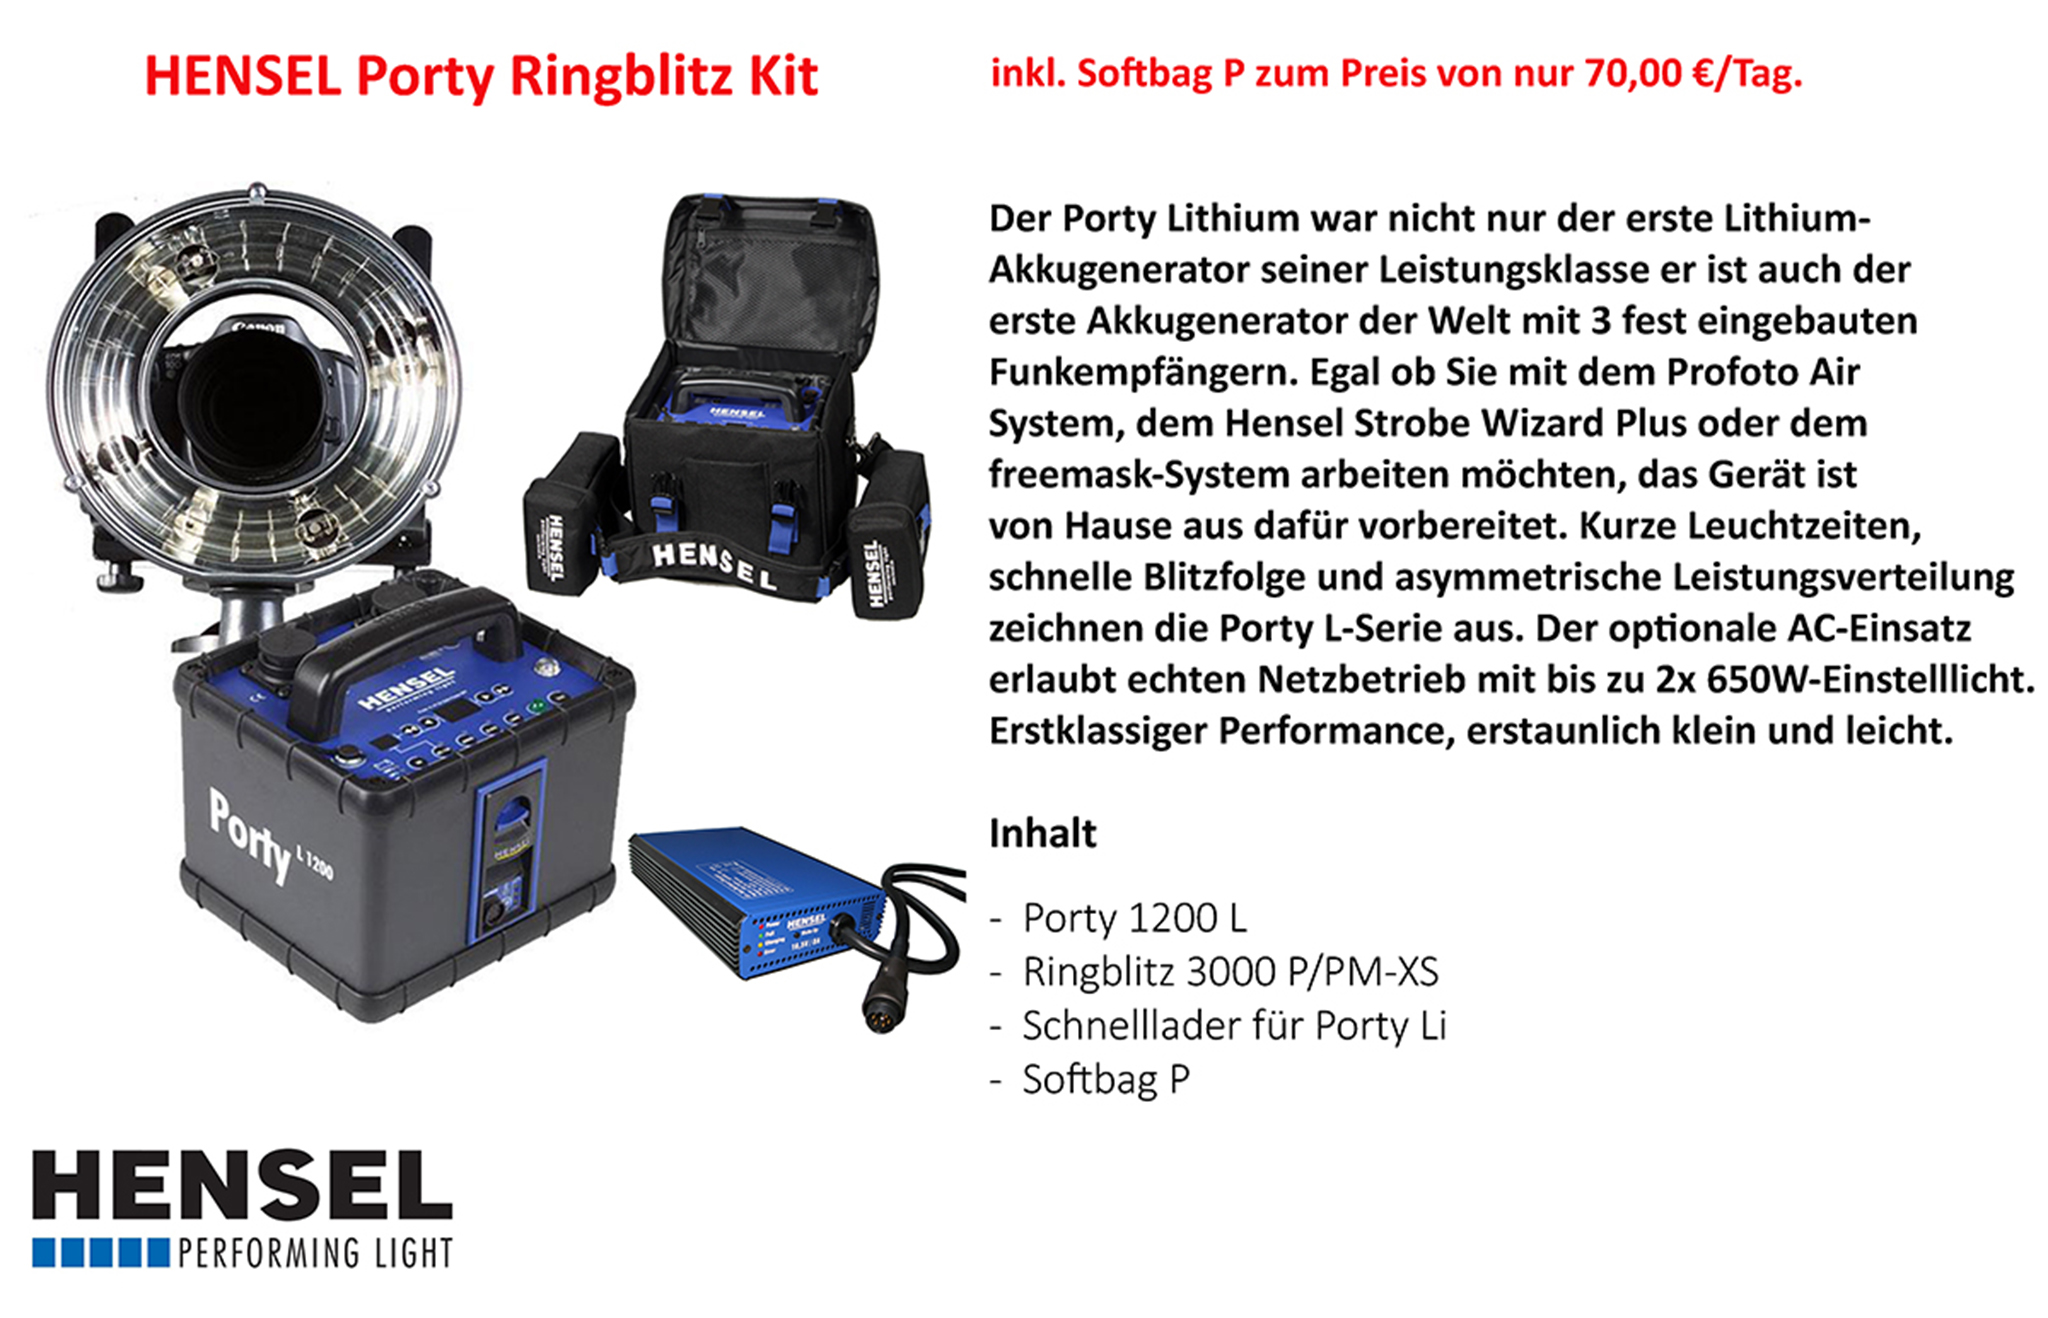 Hensel Porty / Ringblitz Kit